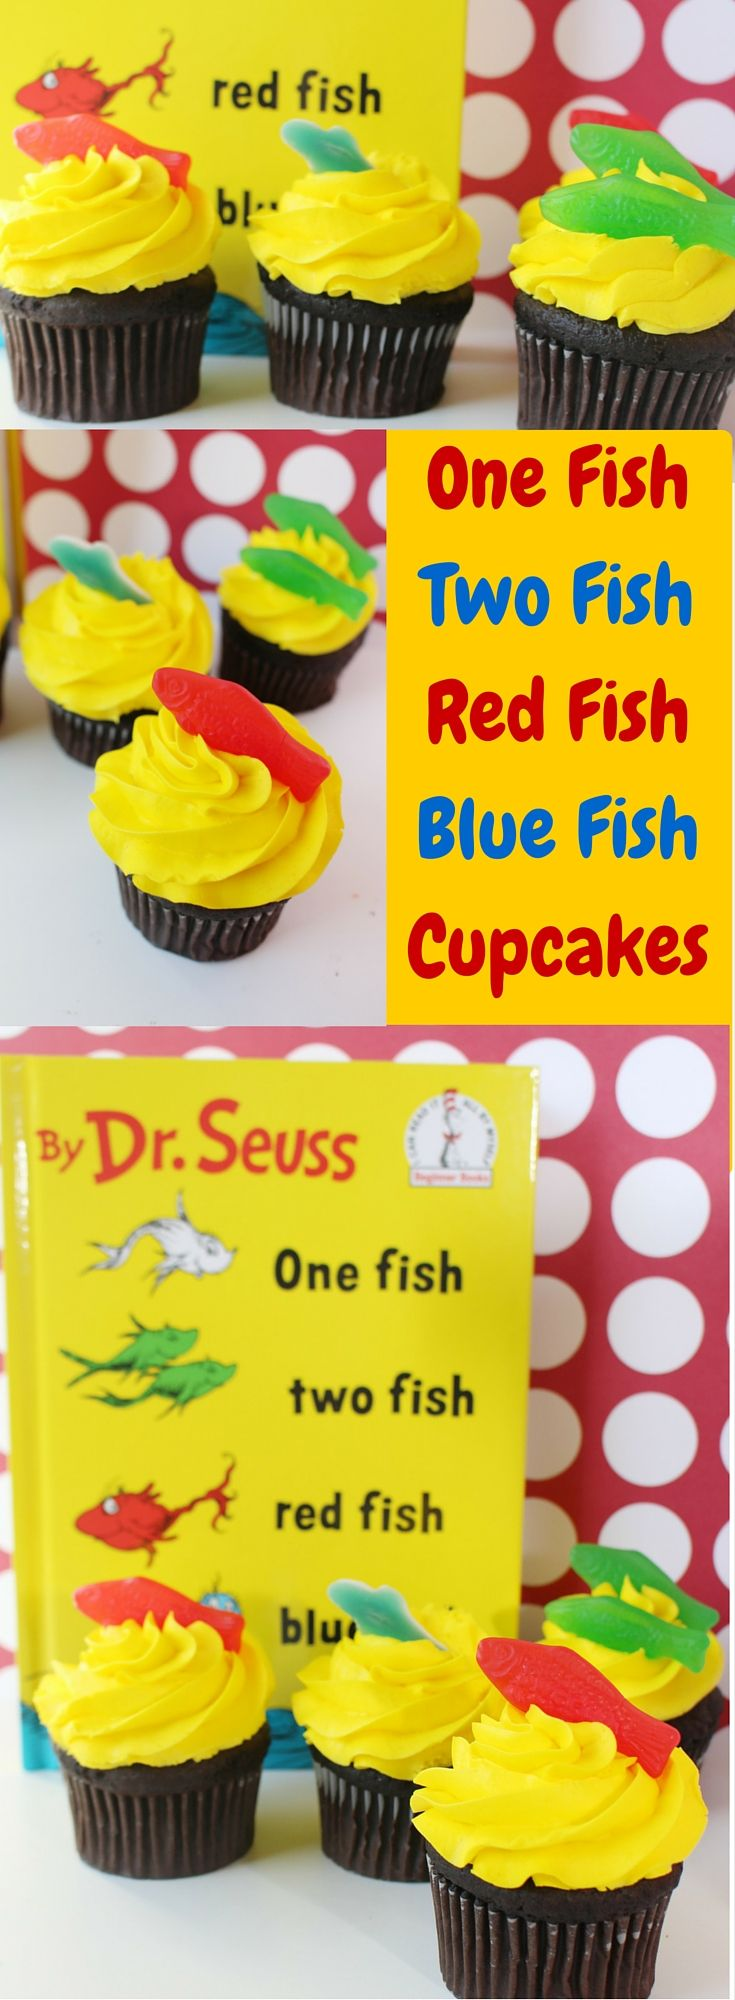 One Fish Two Fish Red Fish Blue Fish Dr. Seuss Cupcakes- Perfect for Dr. Seuss day on March 2nd.